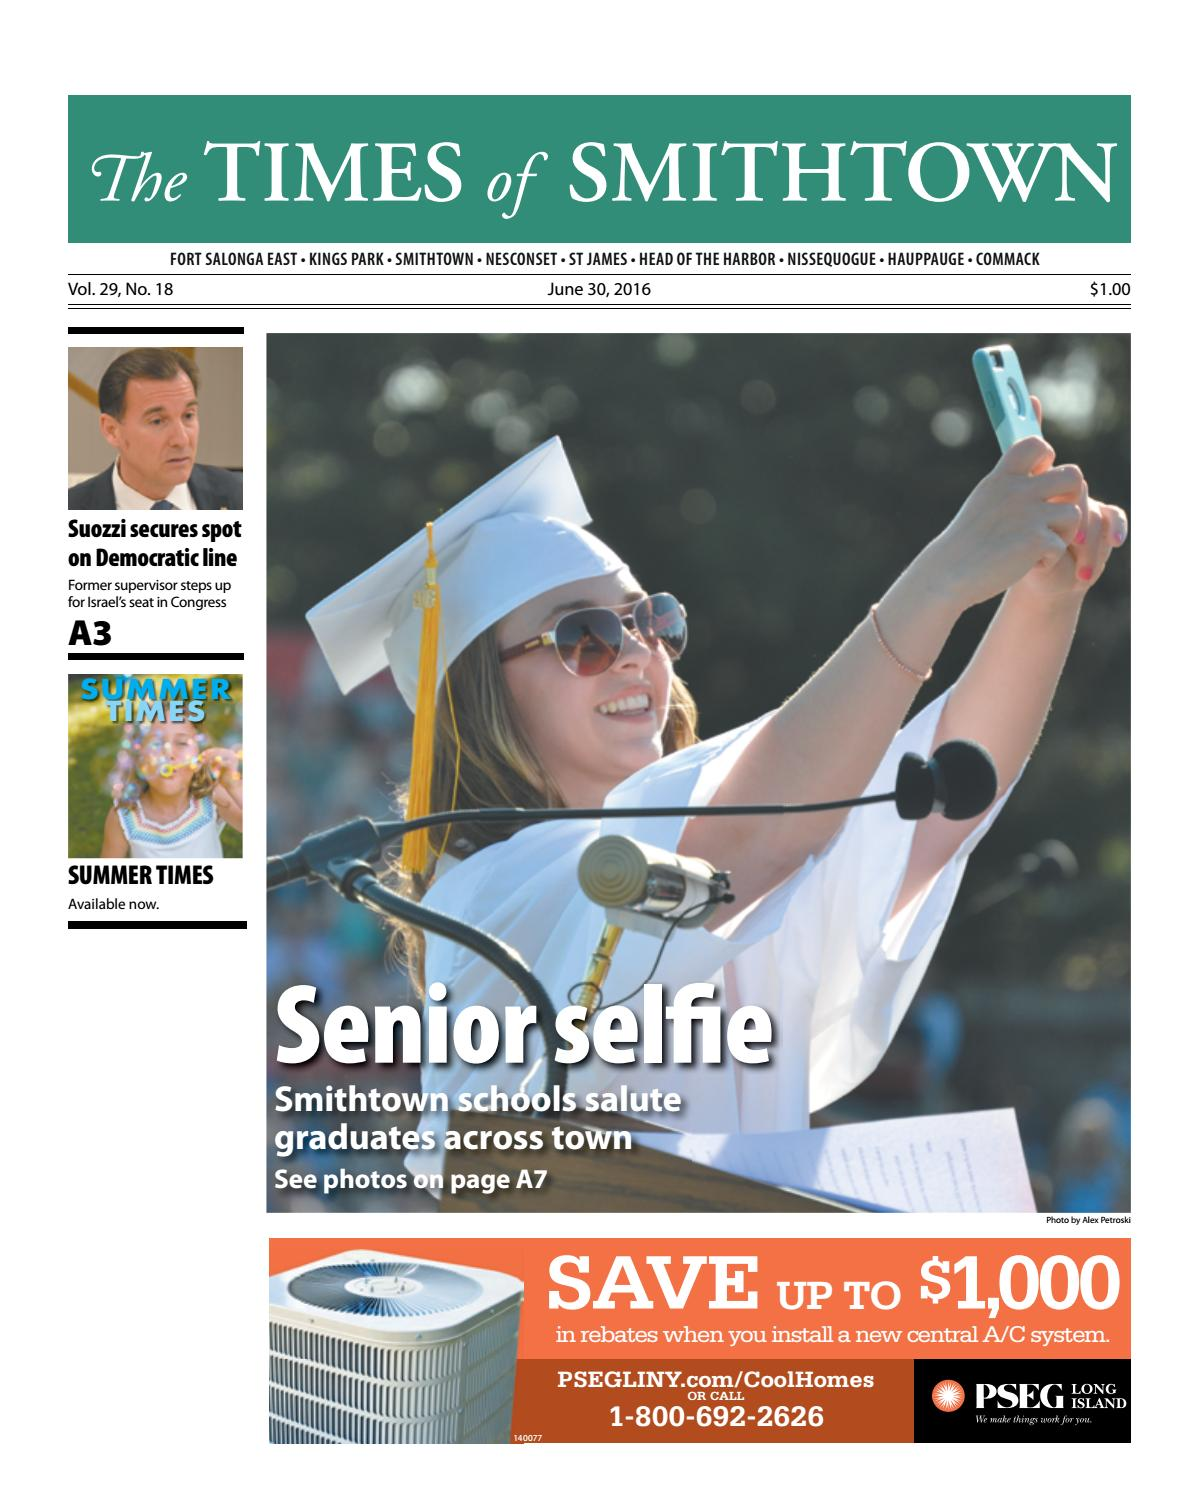 The times of smithtown june 30 2016 by tbr news media issuu negle